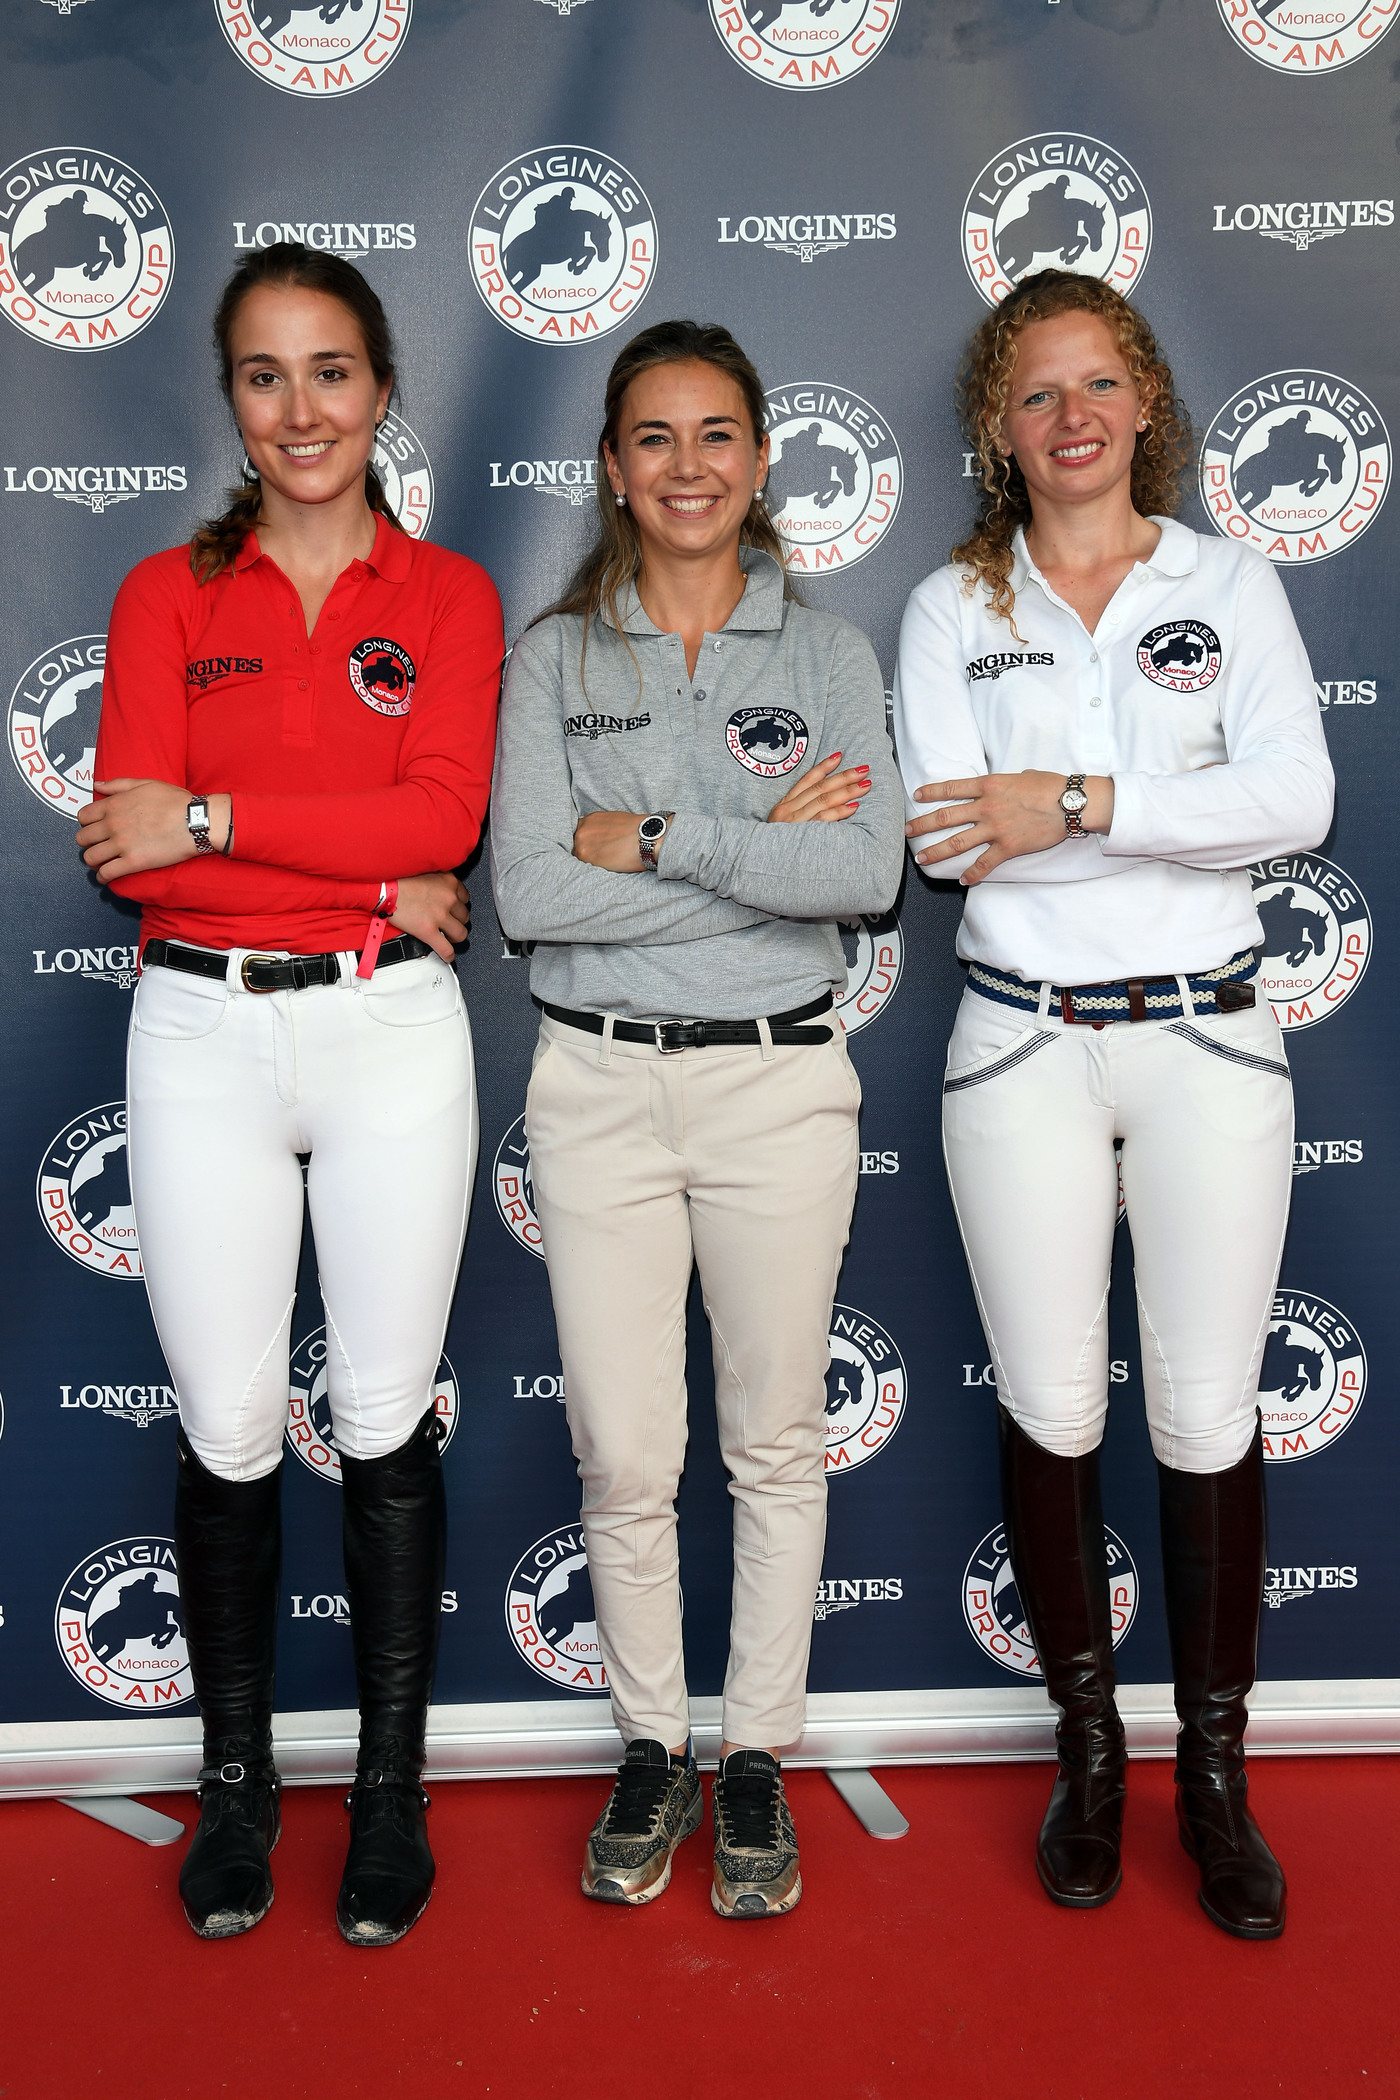 Longines Show Jumping Event: The Longines Global Champions Tour of Monaco attracted horse enthusiasts in the glamorous Principality  6